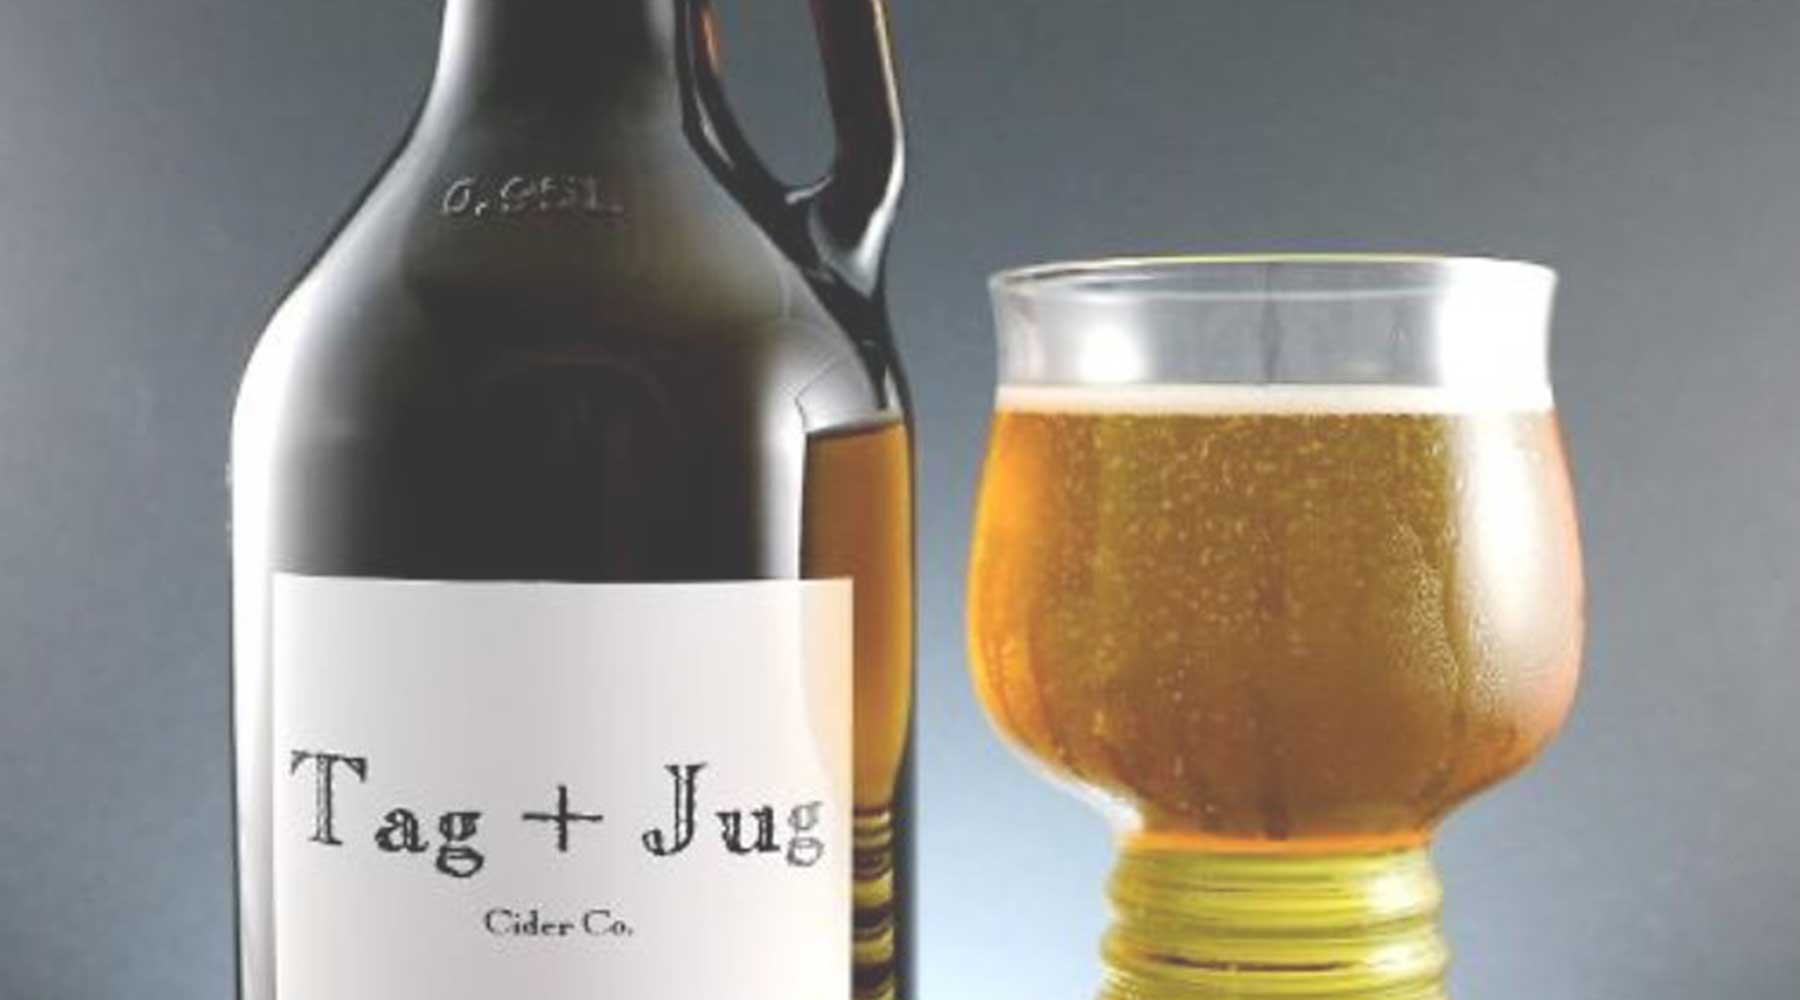 Tag + Jug Cider Company | Just Wine